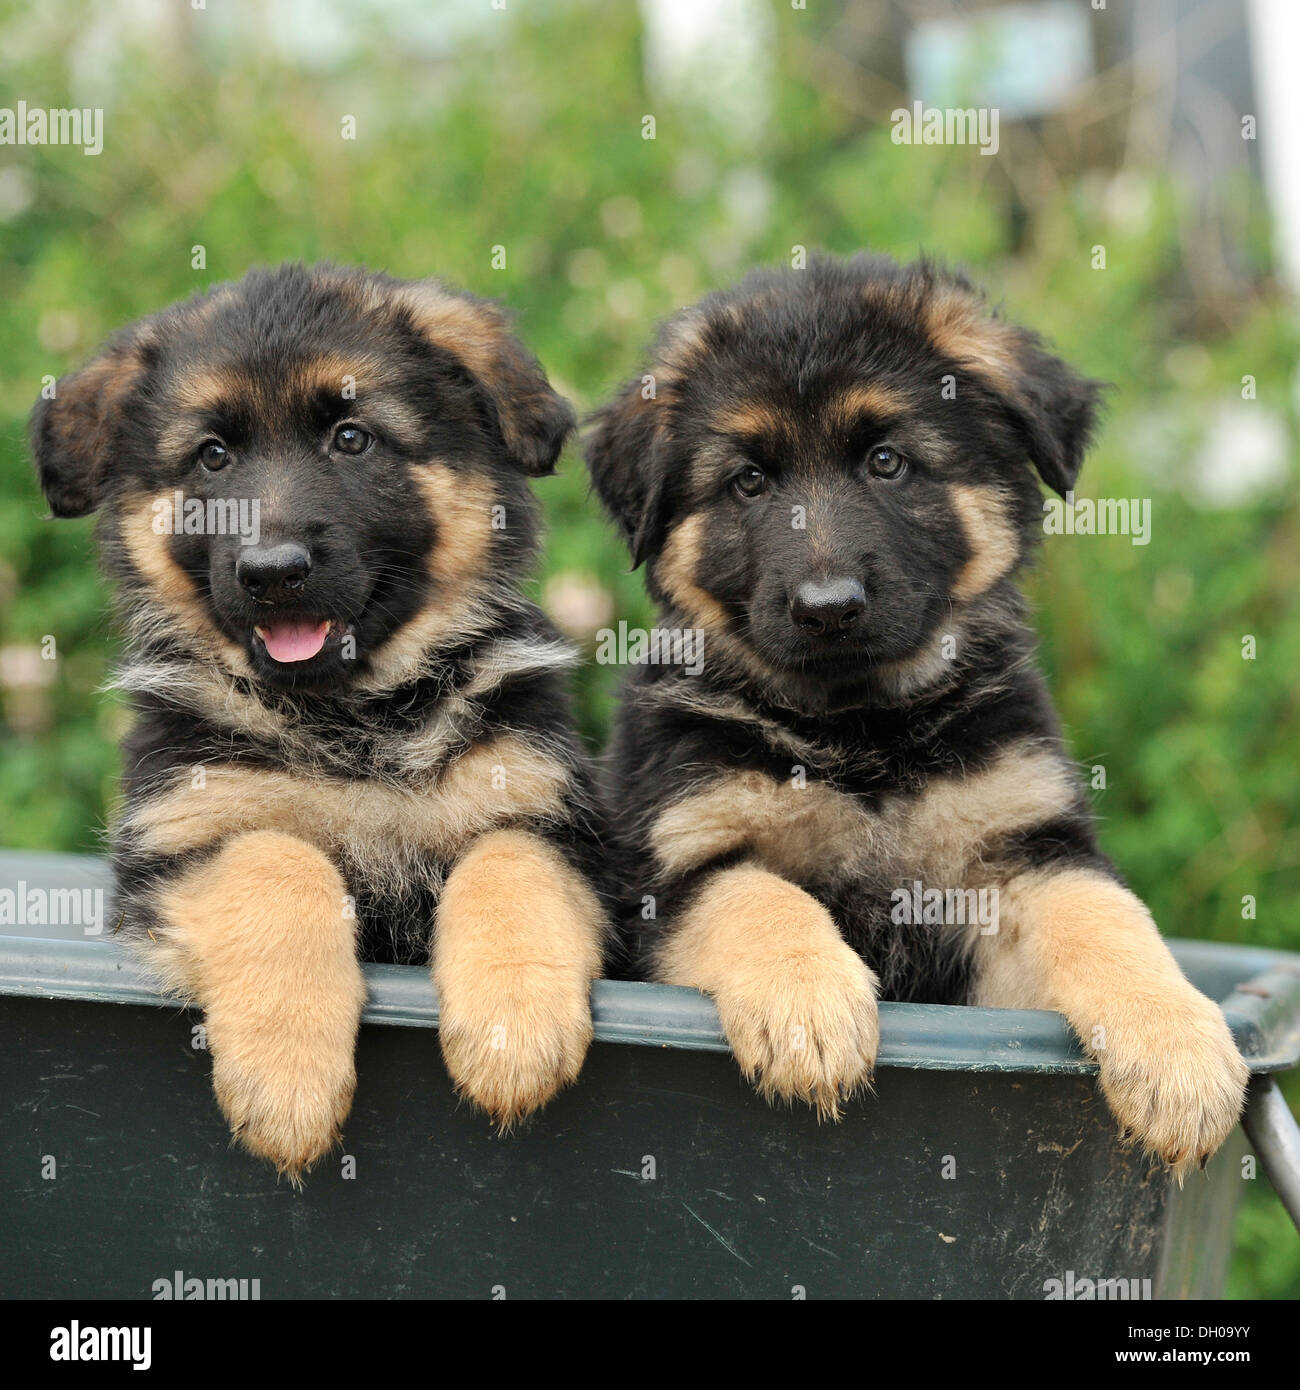 Puppies High Resolution Stock Photography And Images Alamy